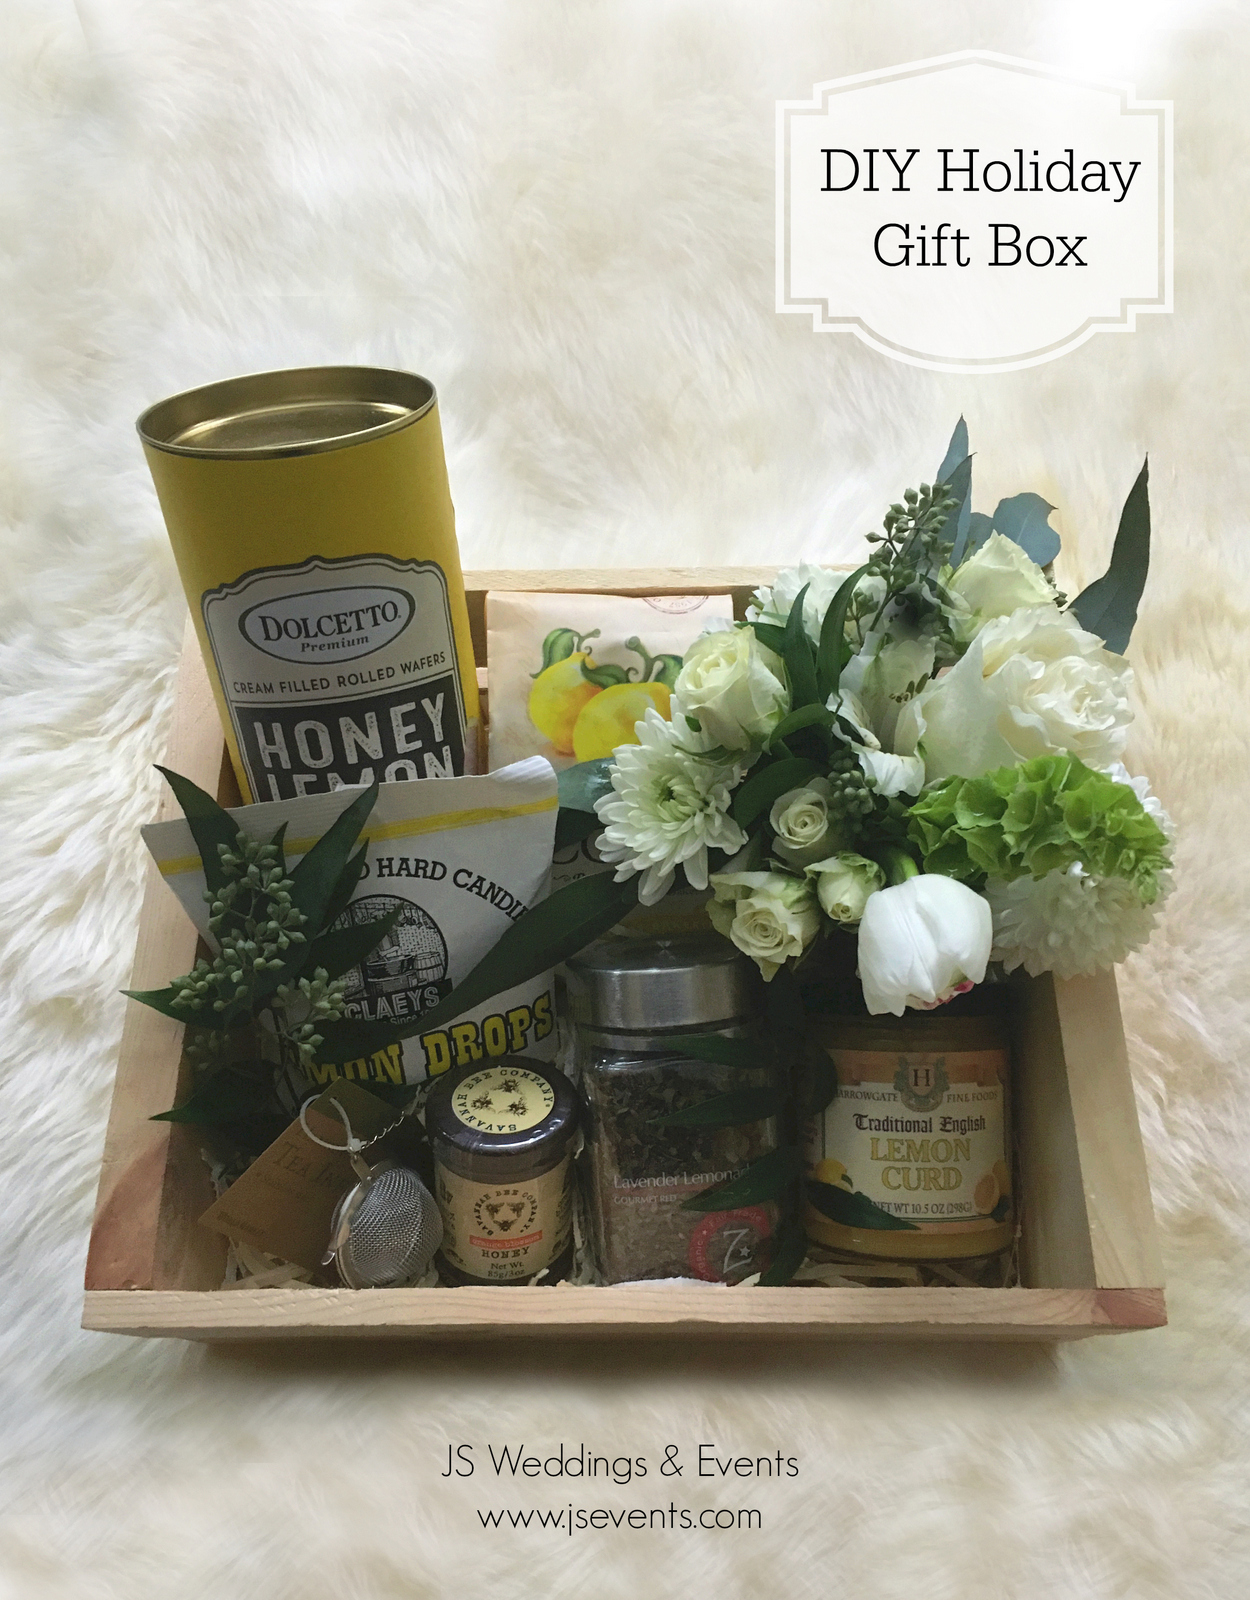 JS Weddings and Events Grand Rapids Wedding Planner and Grand Rapids Floral Designer DIY Holiday Gift Box